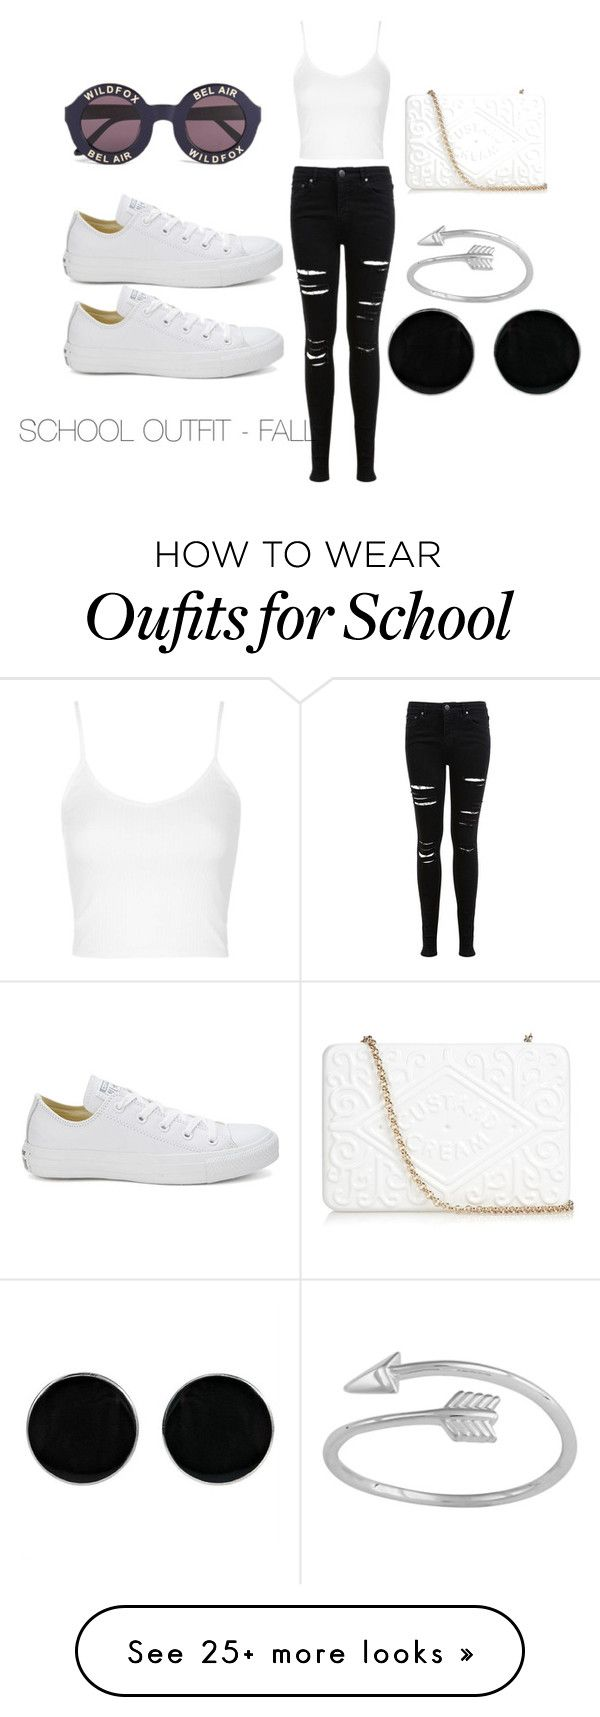 """SCHOOL OUTFIT - FALL"" by dance2454 on Polyvore featuring Topshop, Miss Selfridge, Converse, Anya Hindmarch, Wildfox and AeraVida"